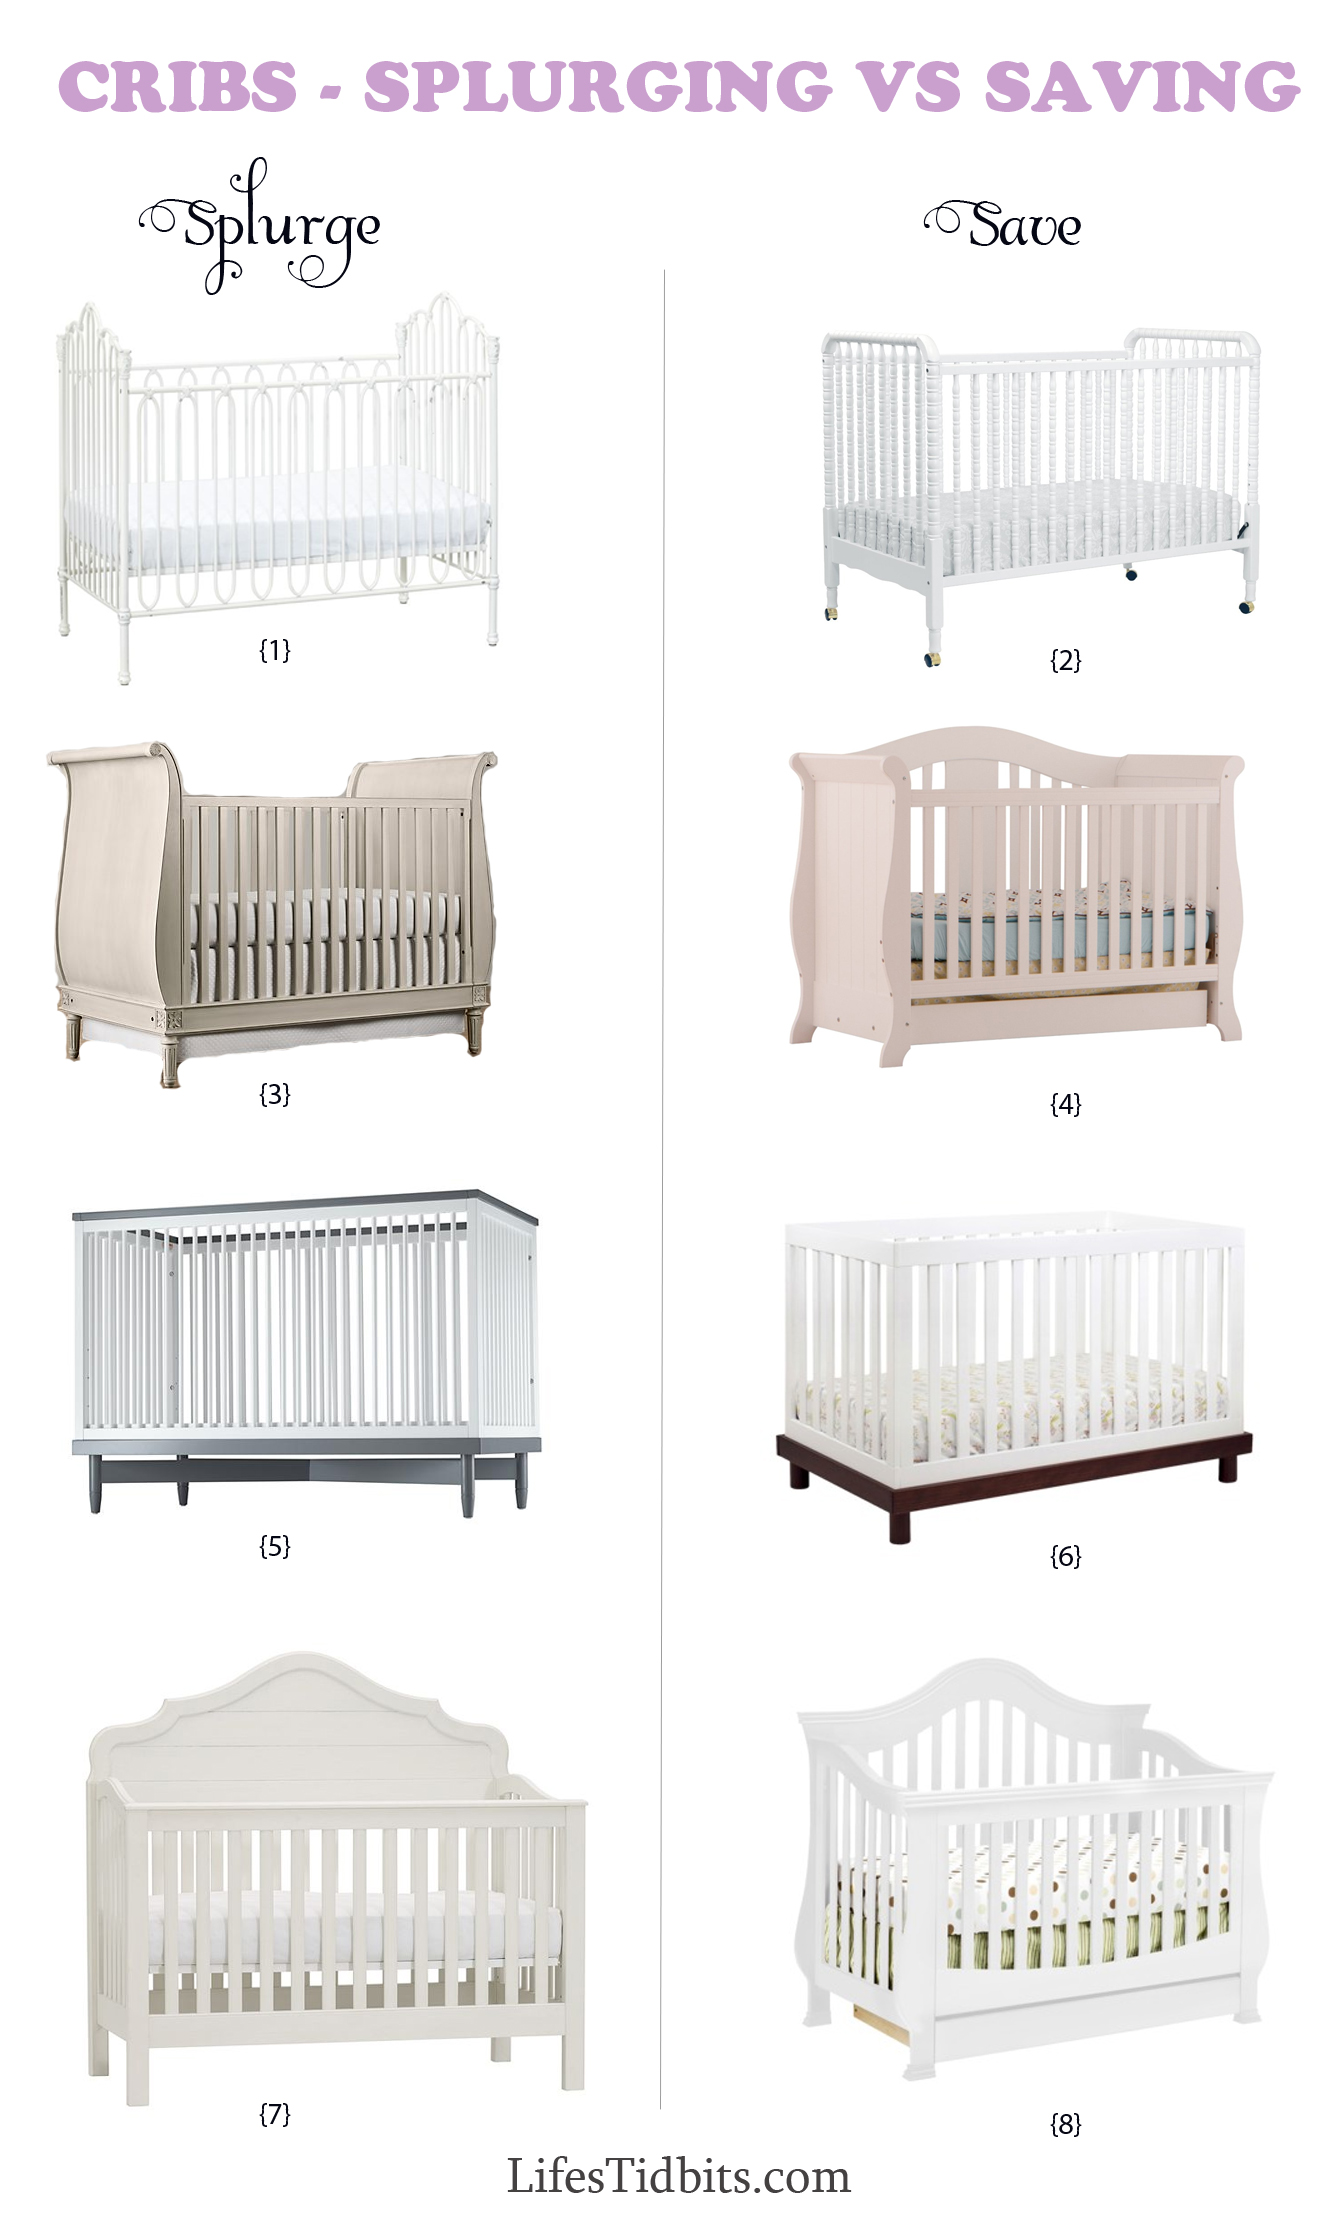 Iron crib for sale craigslist - Nursery Crib Inspiration Splurging Vs Saving Lifes S Tidbits